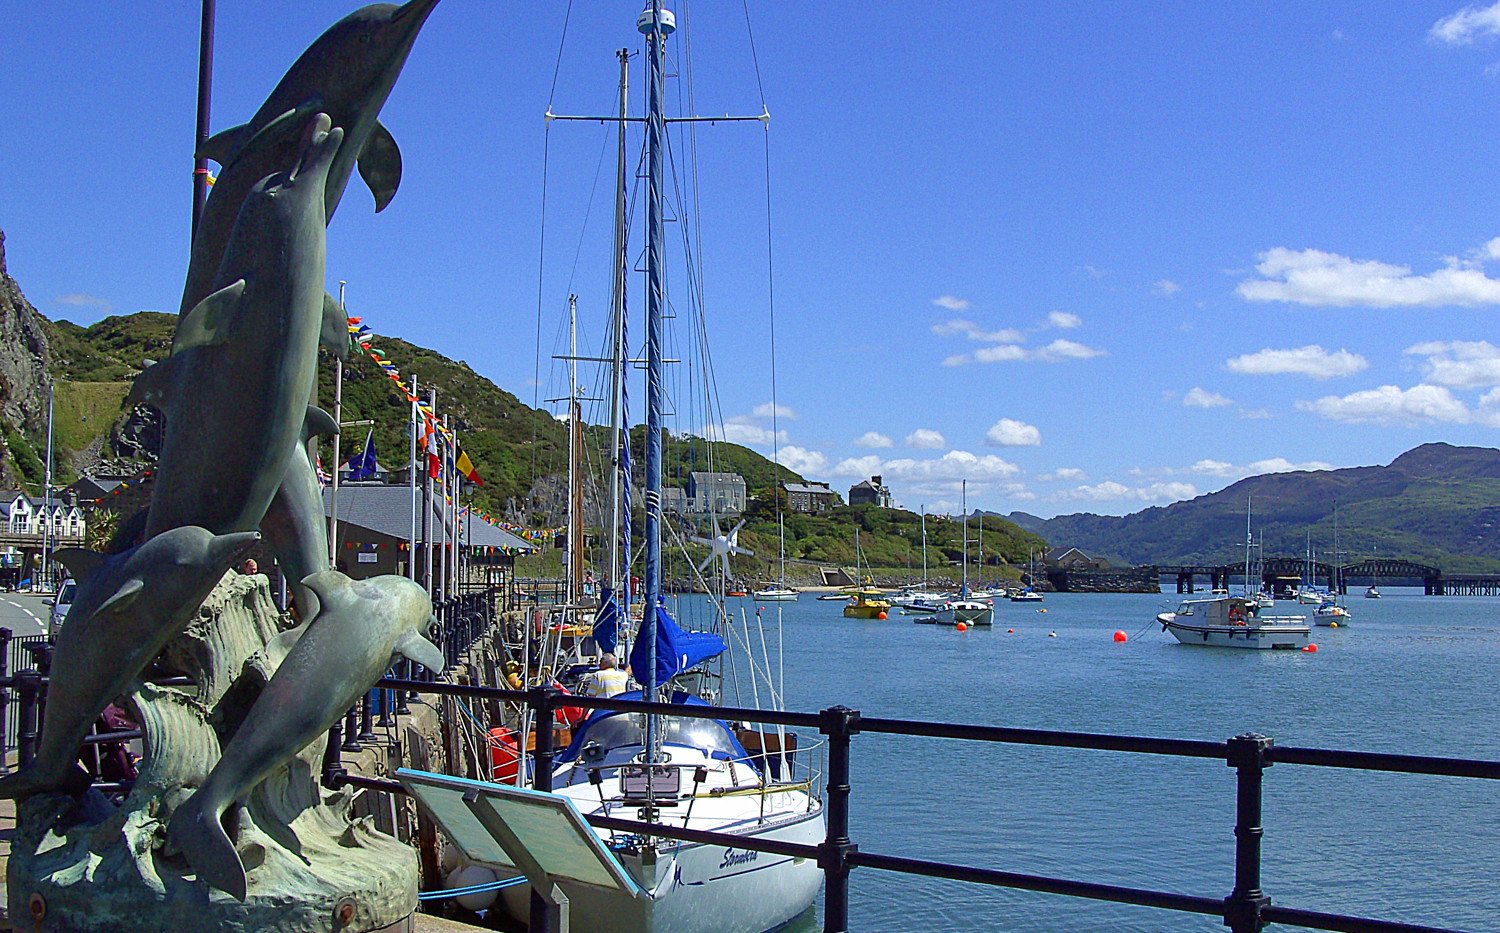 Dolphin statue by Barmouth harbour